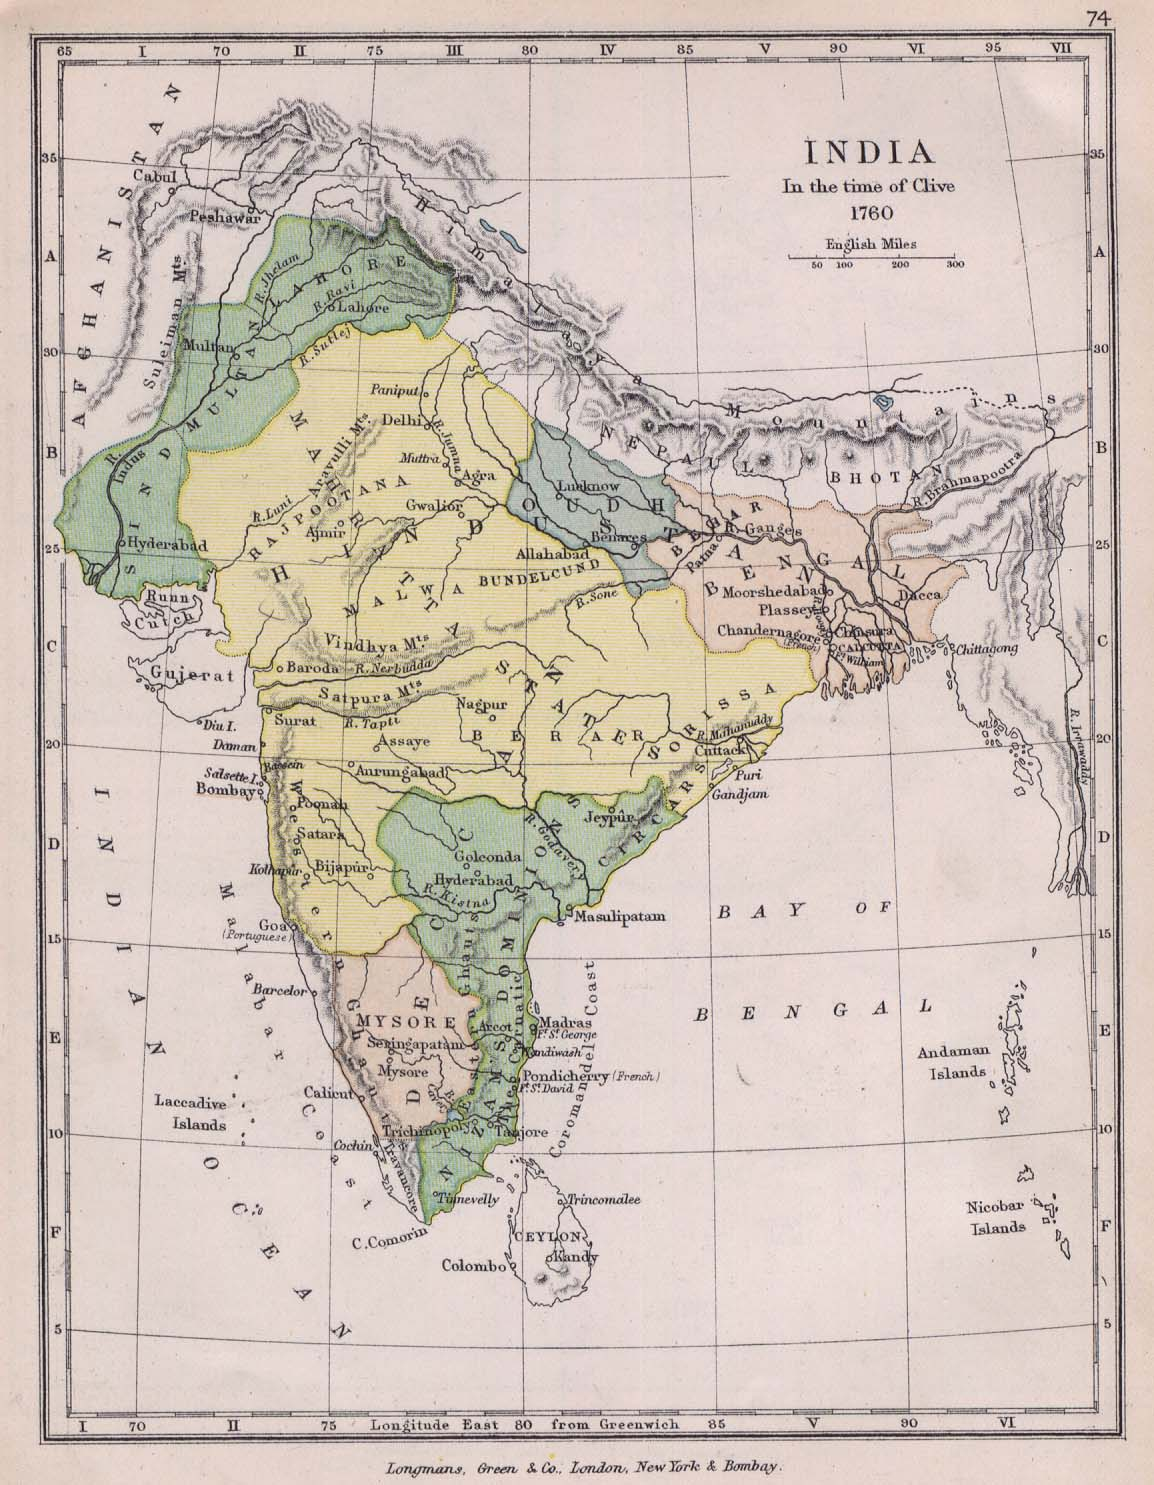 Download Free India Maps on india map examples, india map open, india map pdf, india political map, india map 1858, india map technology, india best house models, india culture collage, india map info, india map history, india caste system map, india map hindi, india map high resolution, india on map, india culture history, india map search, india map art, india map games, india map resources,